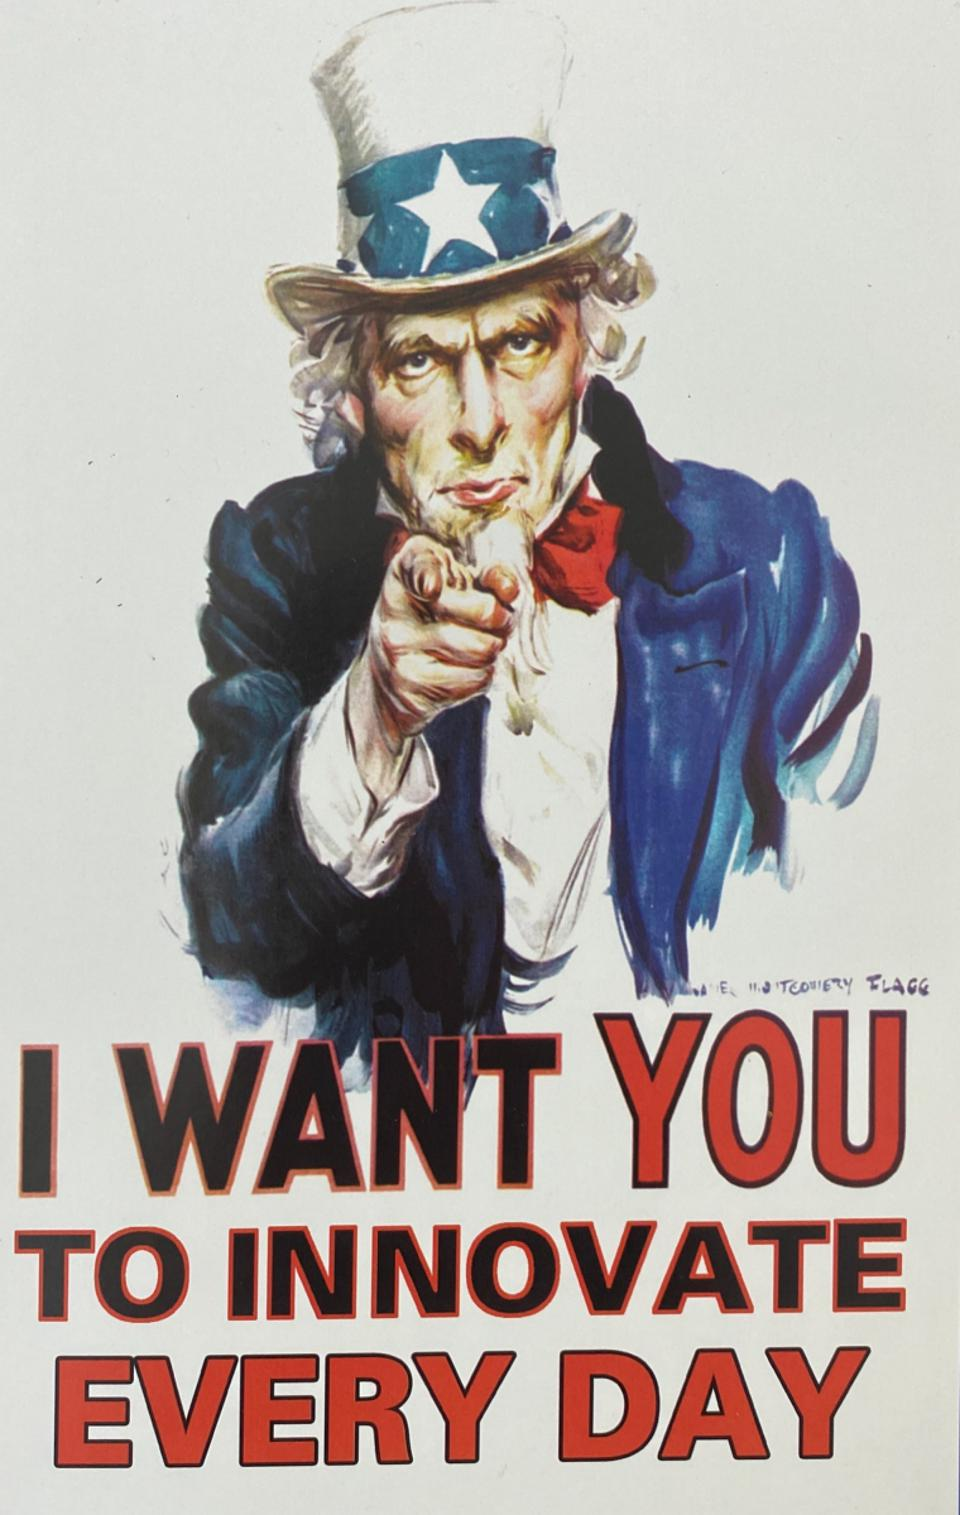 Uncle Sam points at the viewer and says ″I want you to innovate every day″